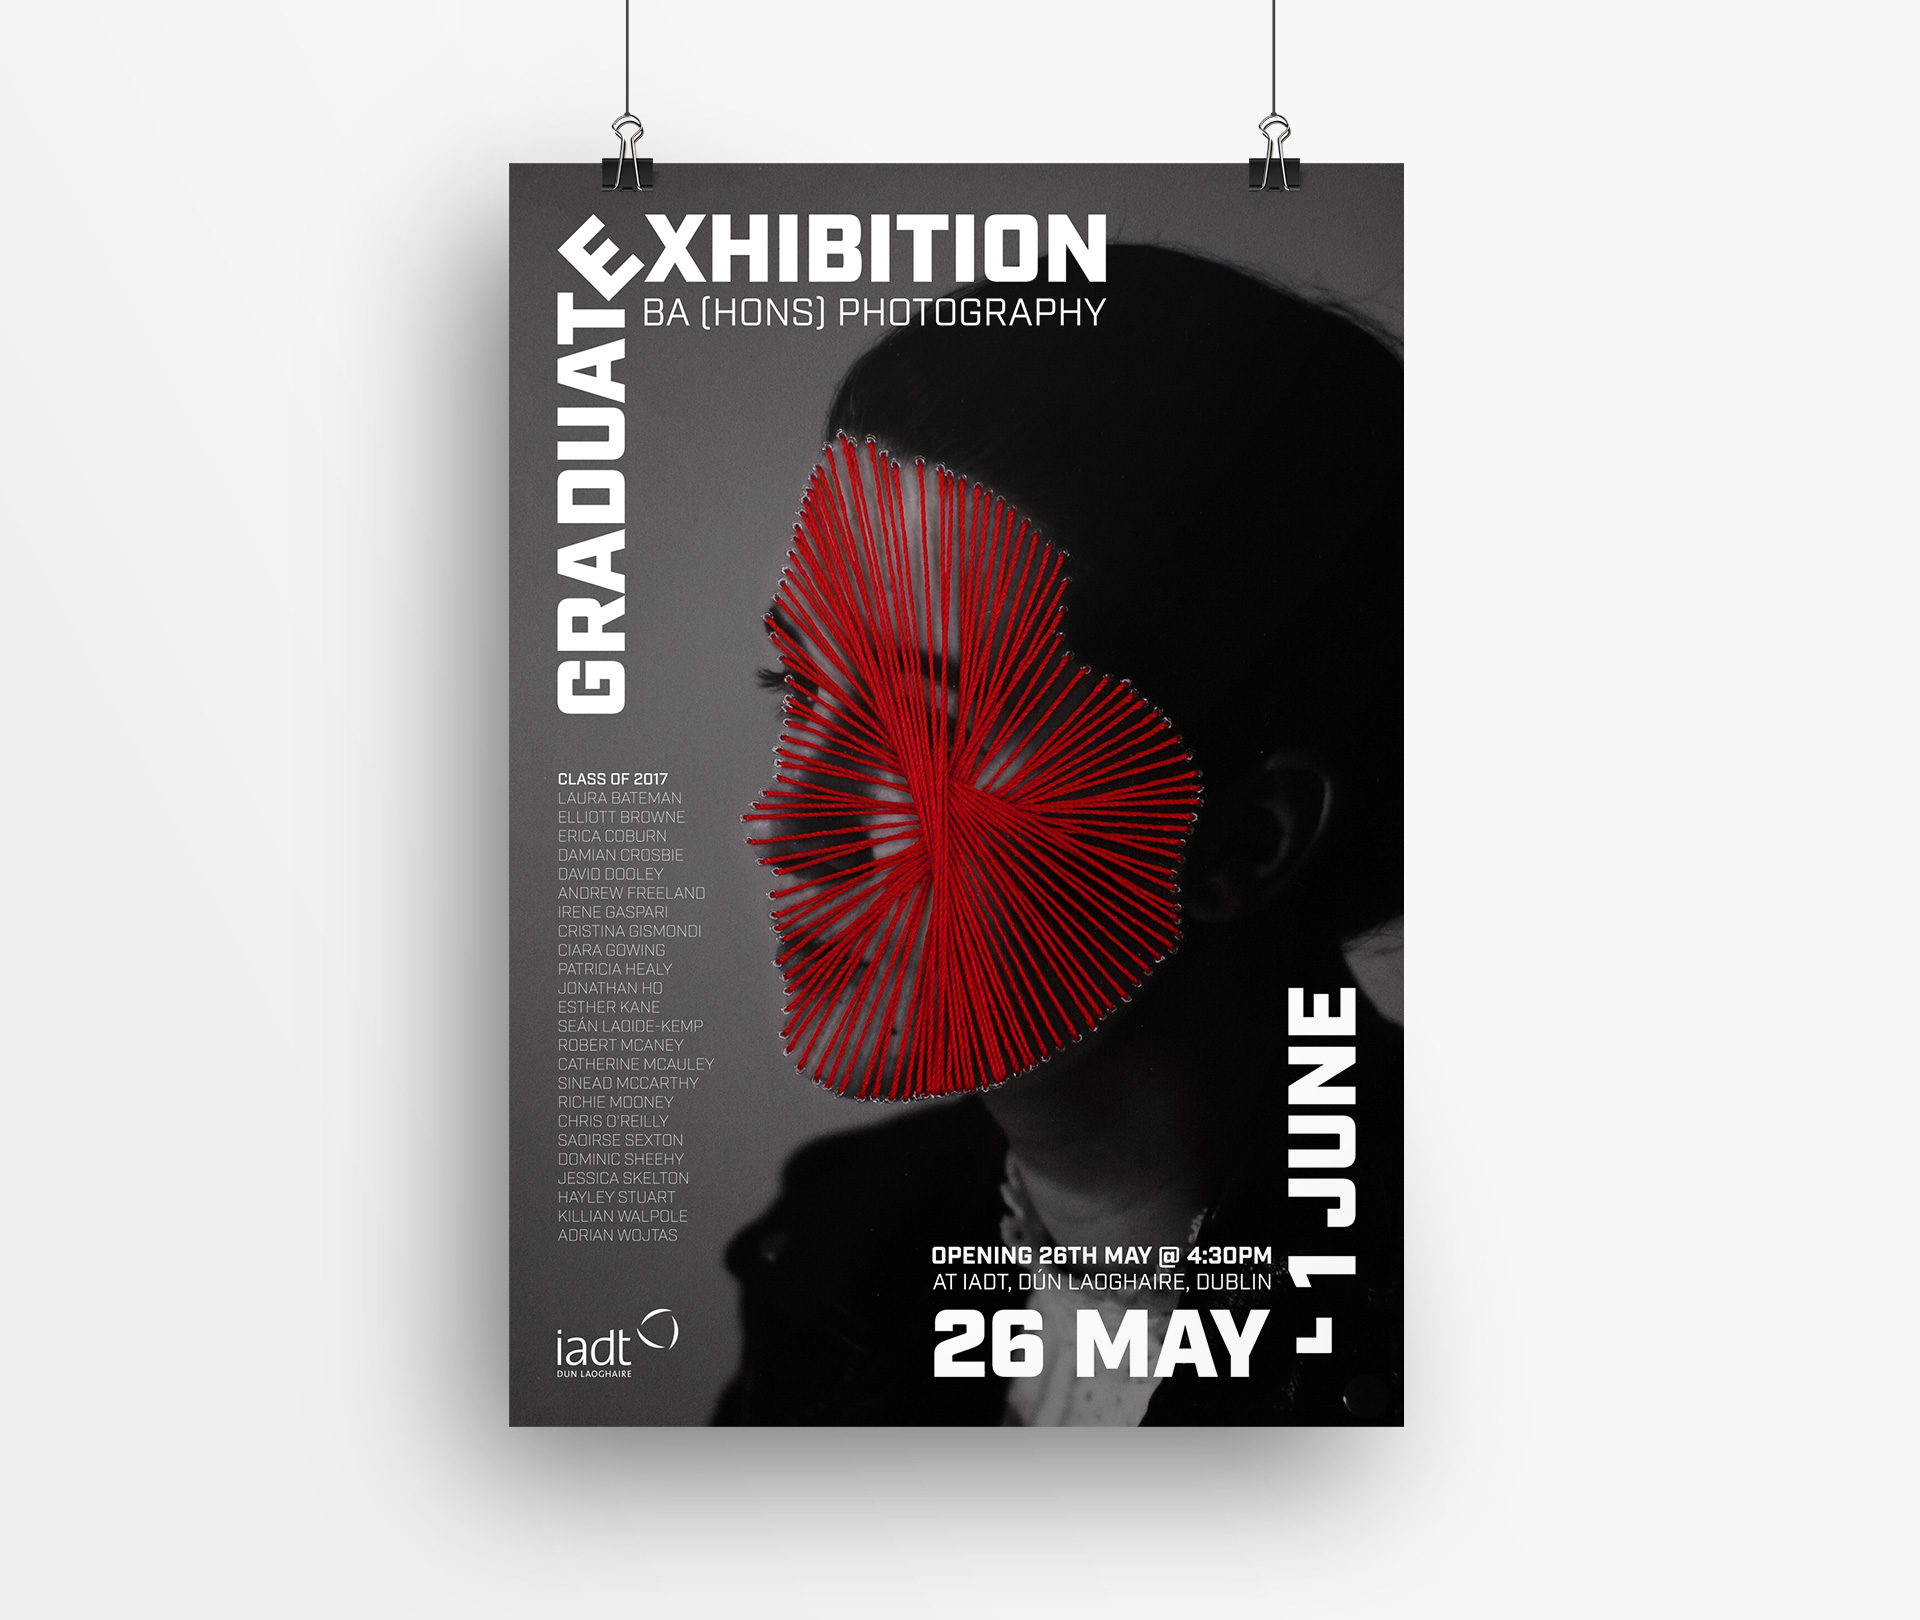 iadt-photography-graduate-exhibition-2017_poster